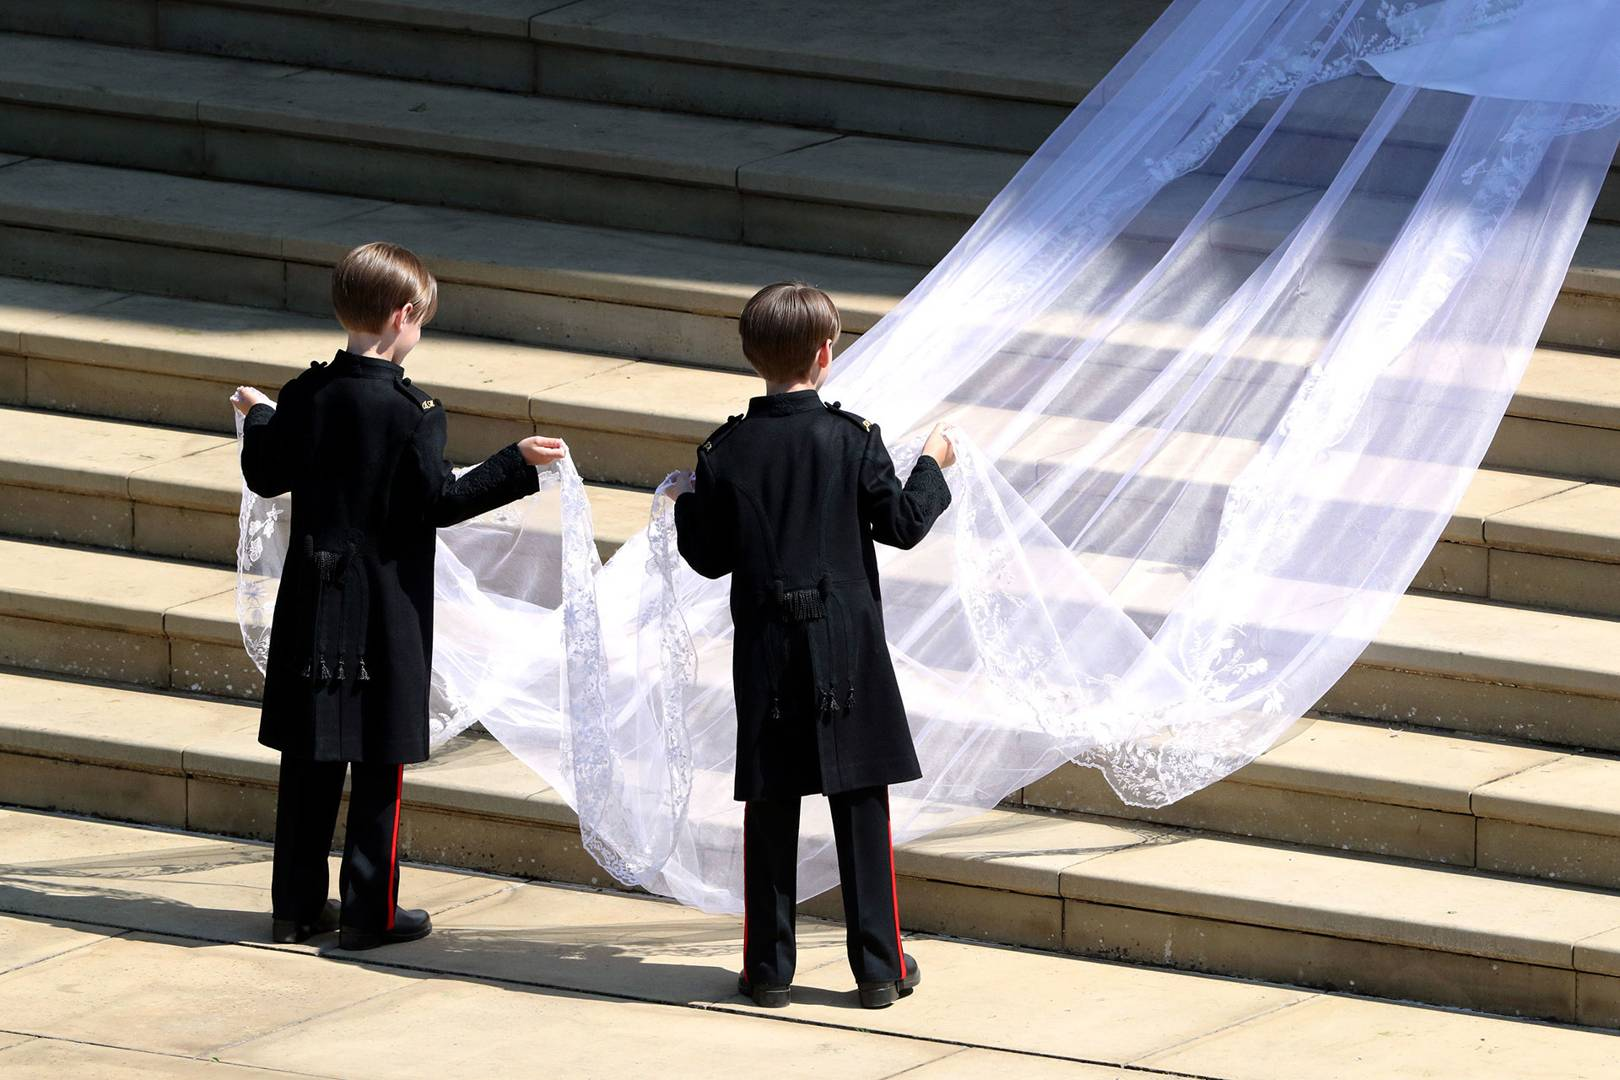 Meghan's wedding veil being carried by her two page boys